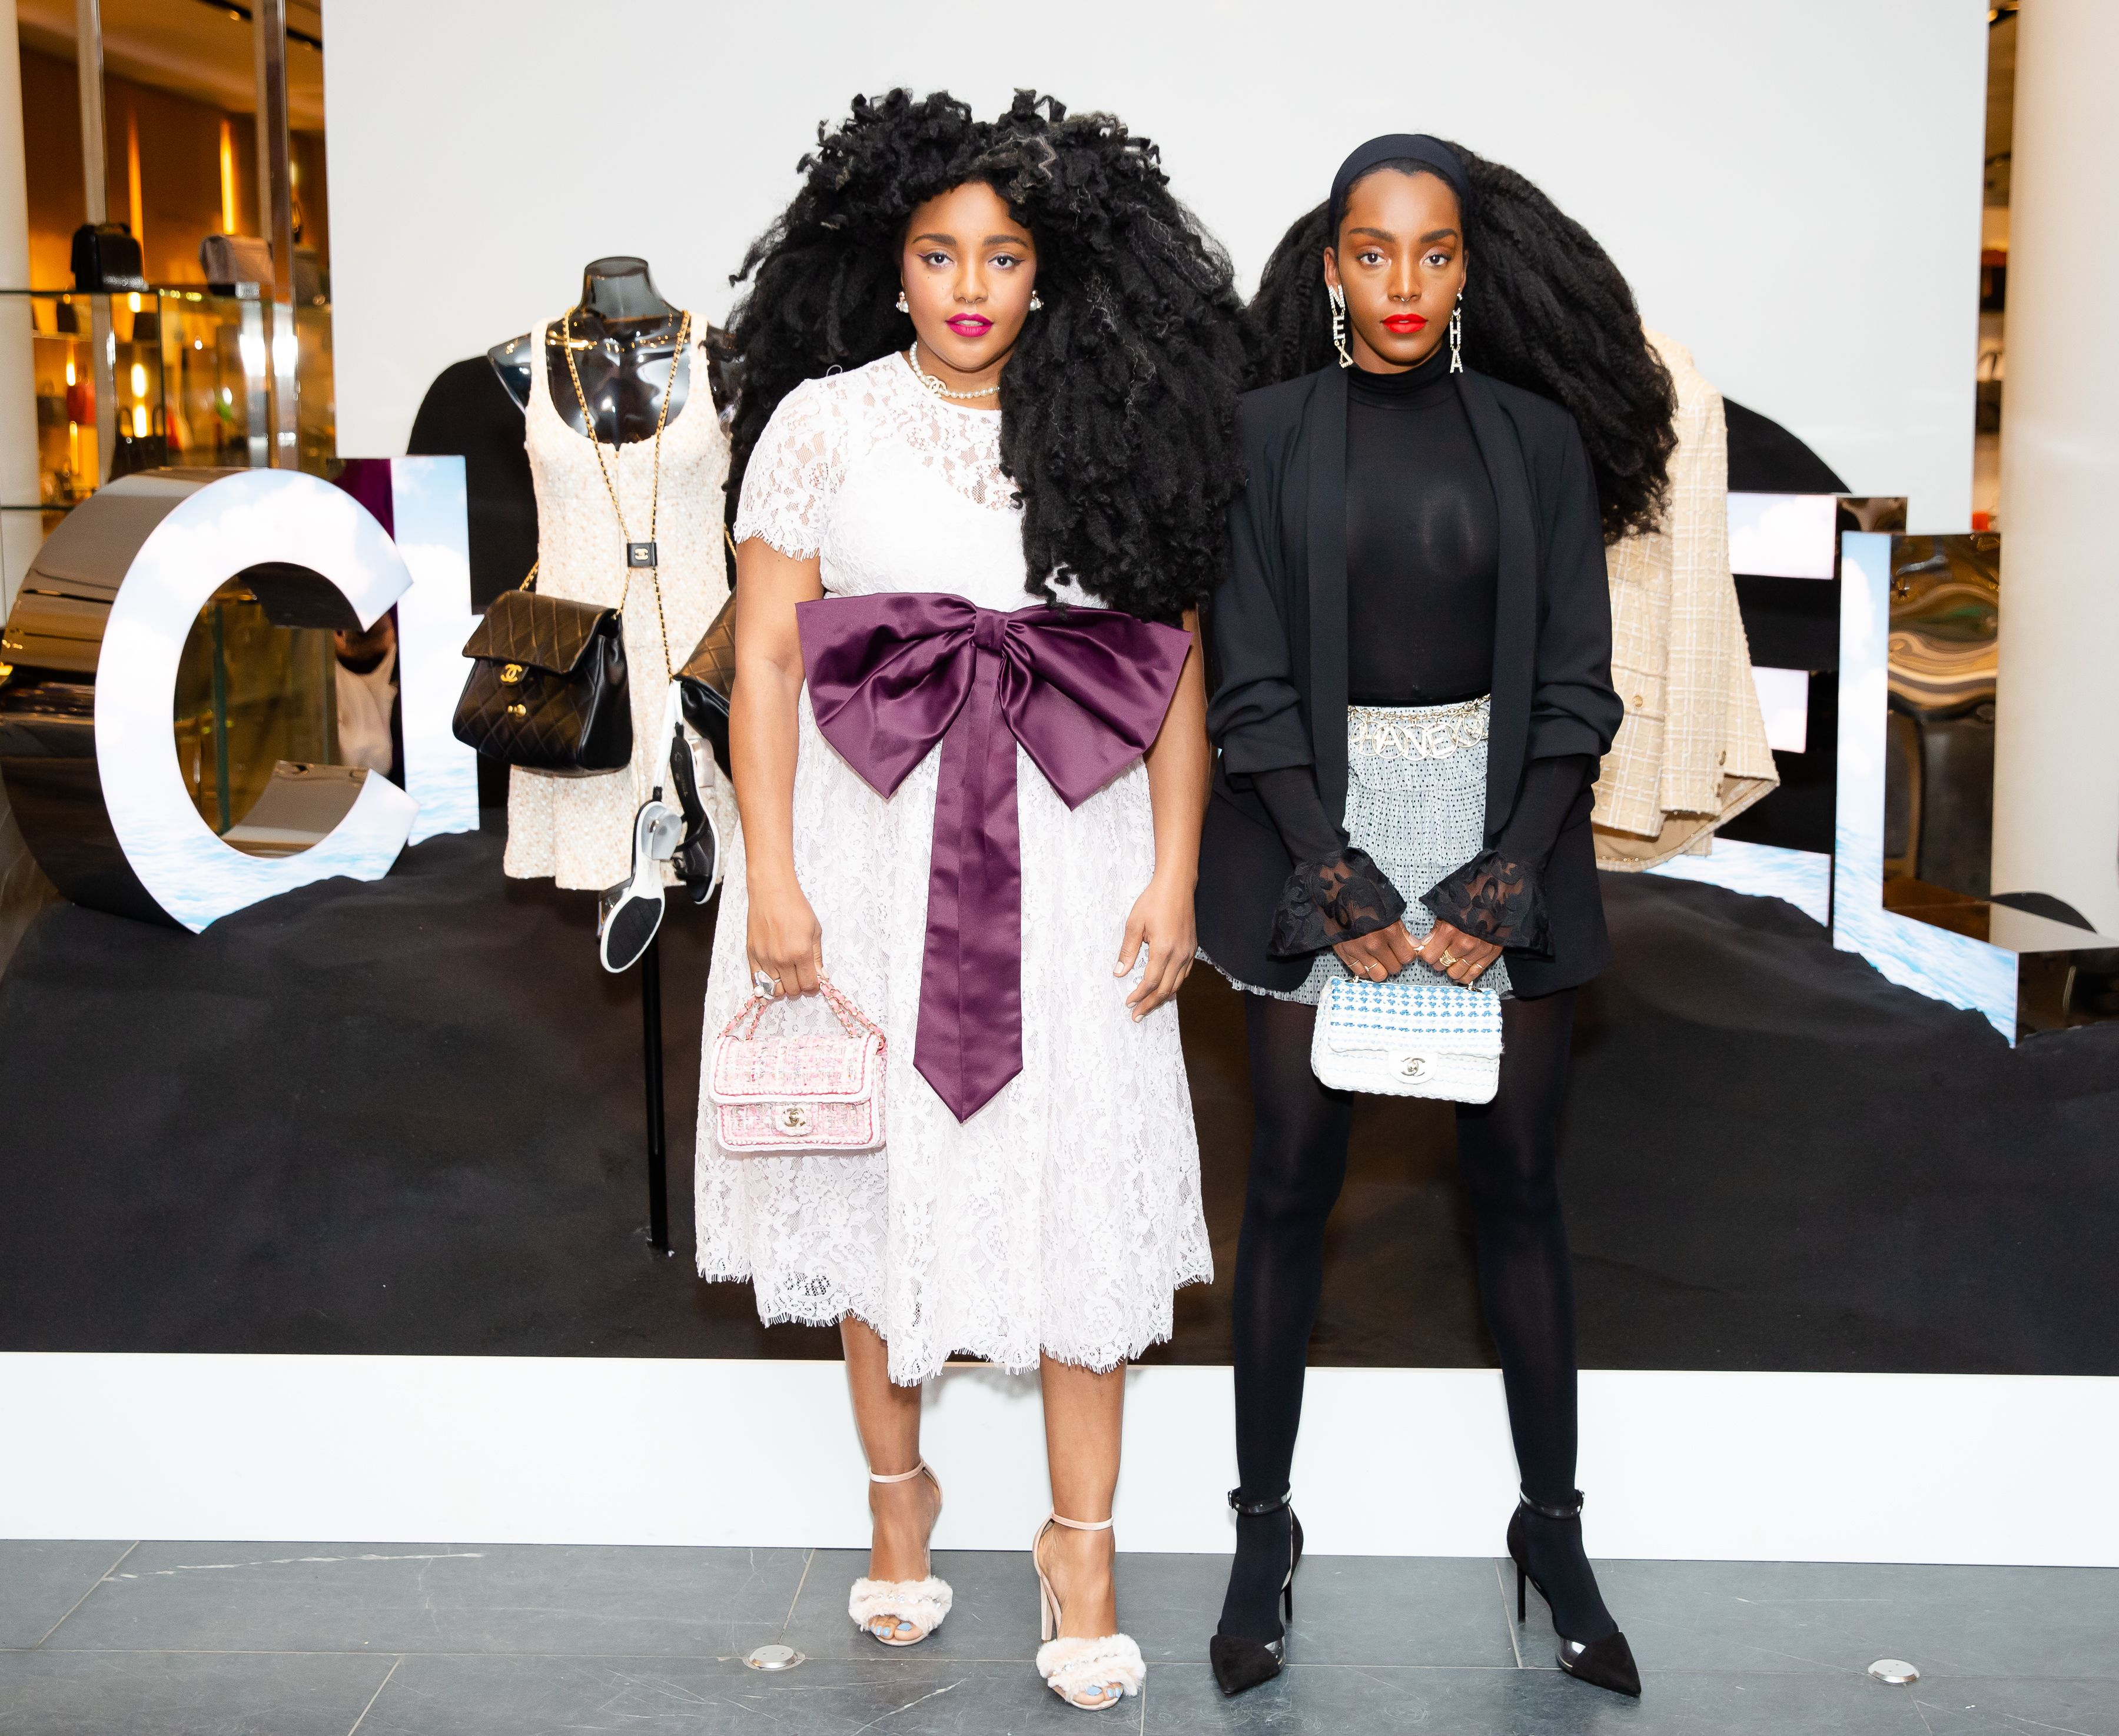 Cipriana Quanna and TK Wonder Cipriana Quanna and TK Wonder attend the cocktail and dinner party to celebrate the opening of Chanel's new boutique at Barneys New York on April 3.